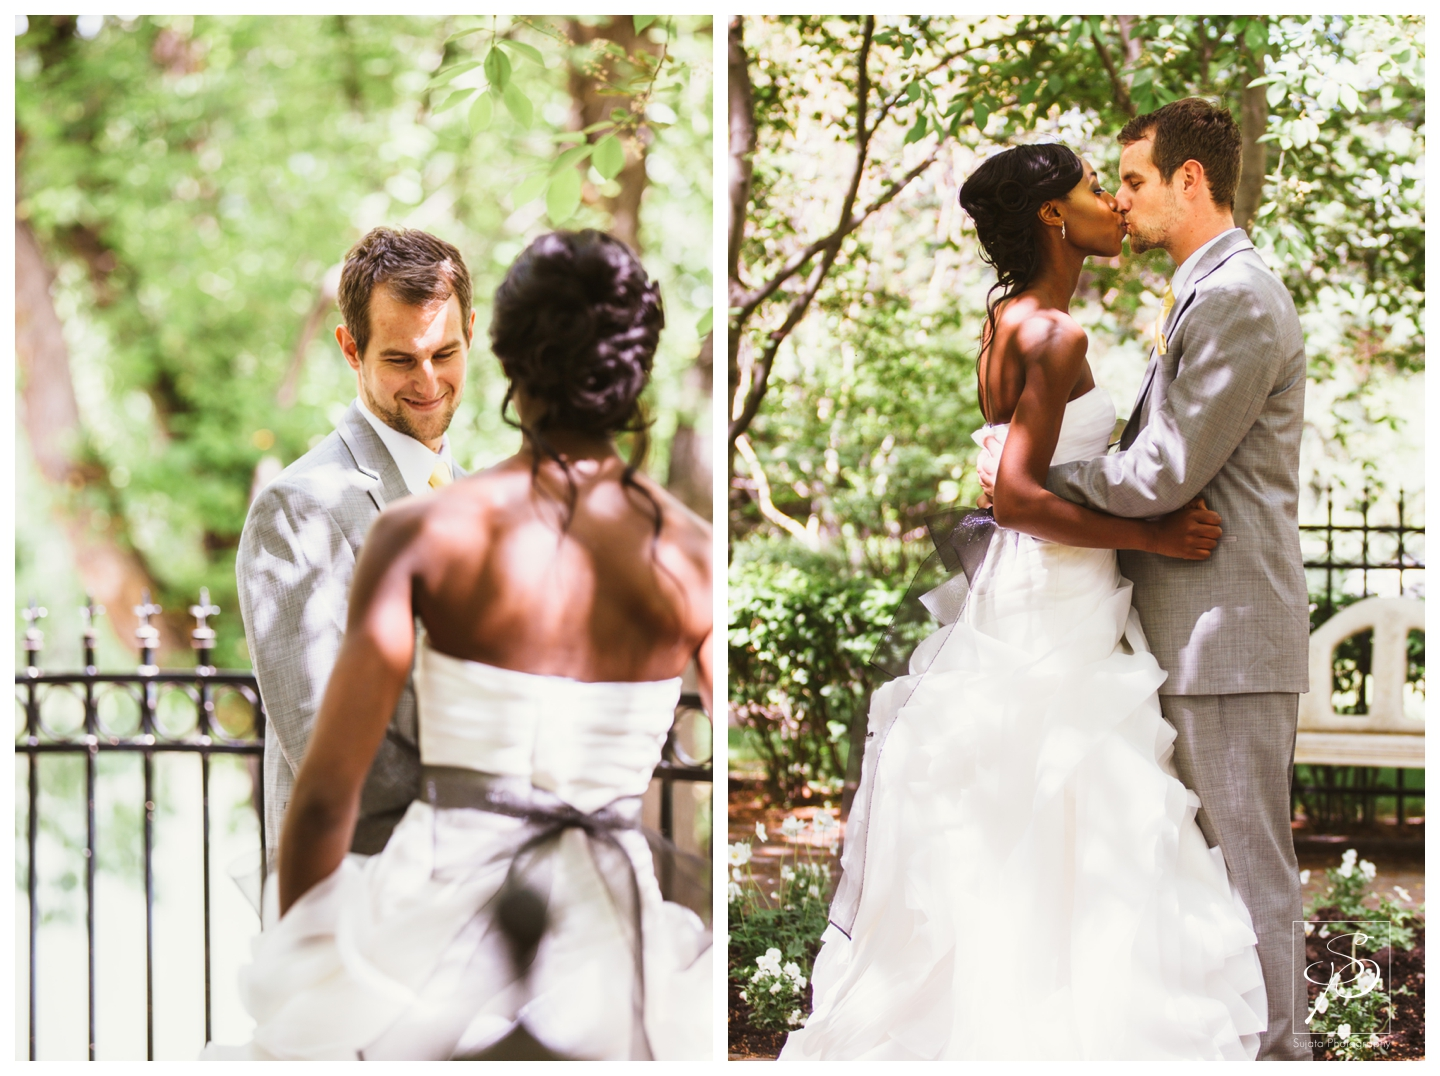 Portraits of Bride and Groom at Woods Park